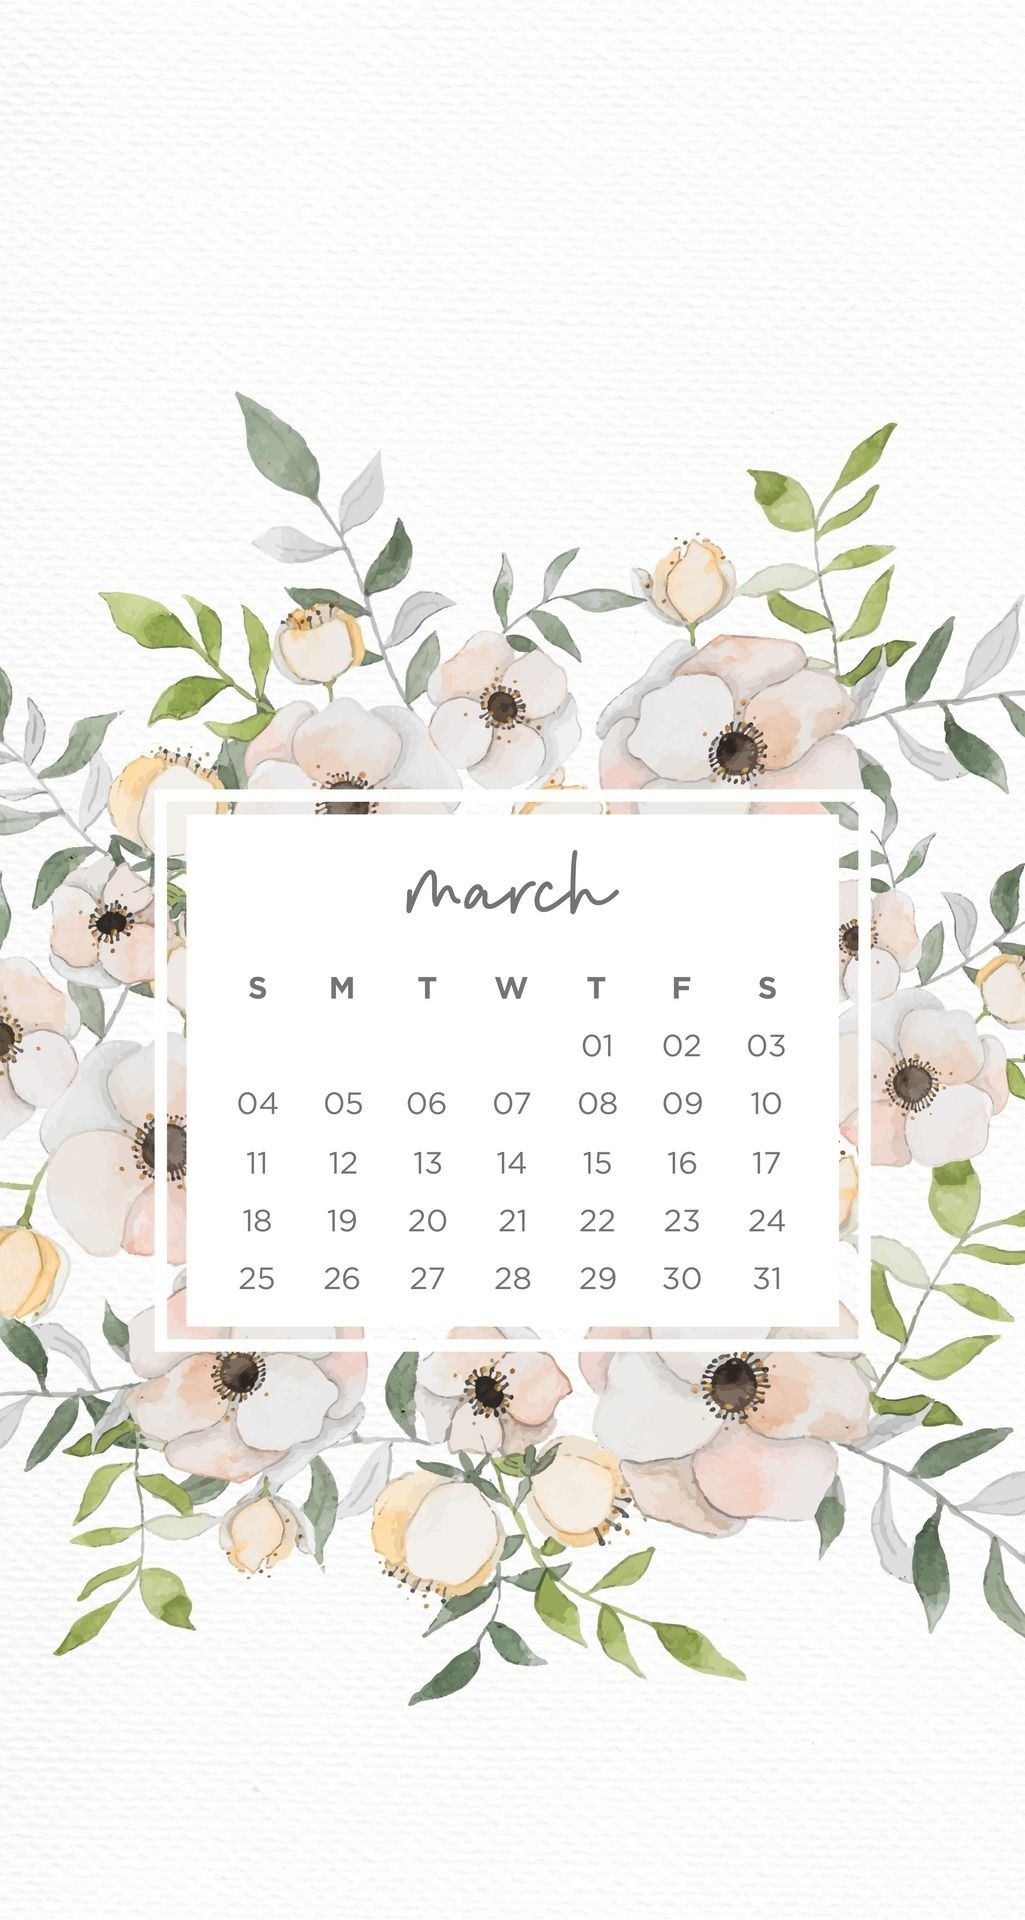 March Spring Floral Phone Wallpapershere Are Some Monthly Phone Wallpapers With Matching Desktop Wa Calendar Wallpaper Phone Wallpapers Tumblr Spring Wallpaper